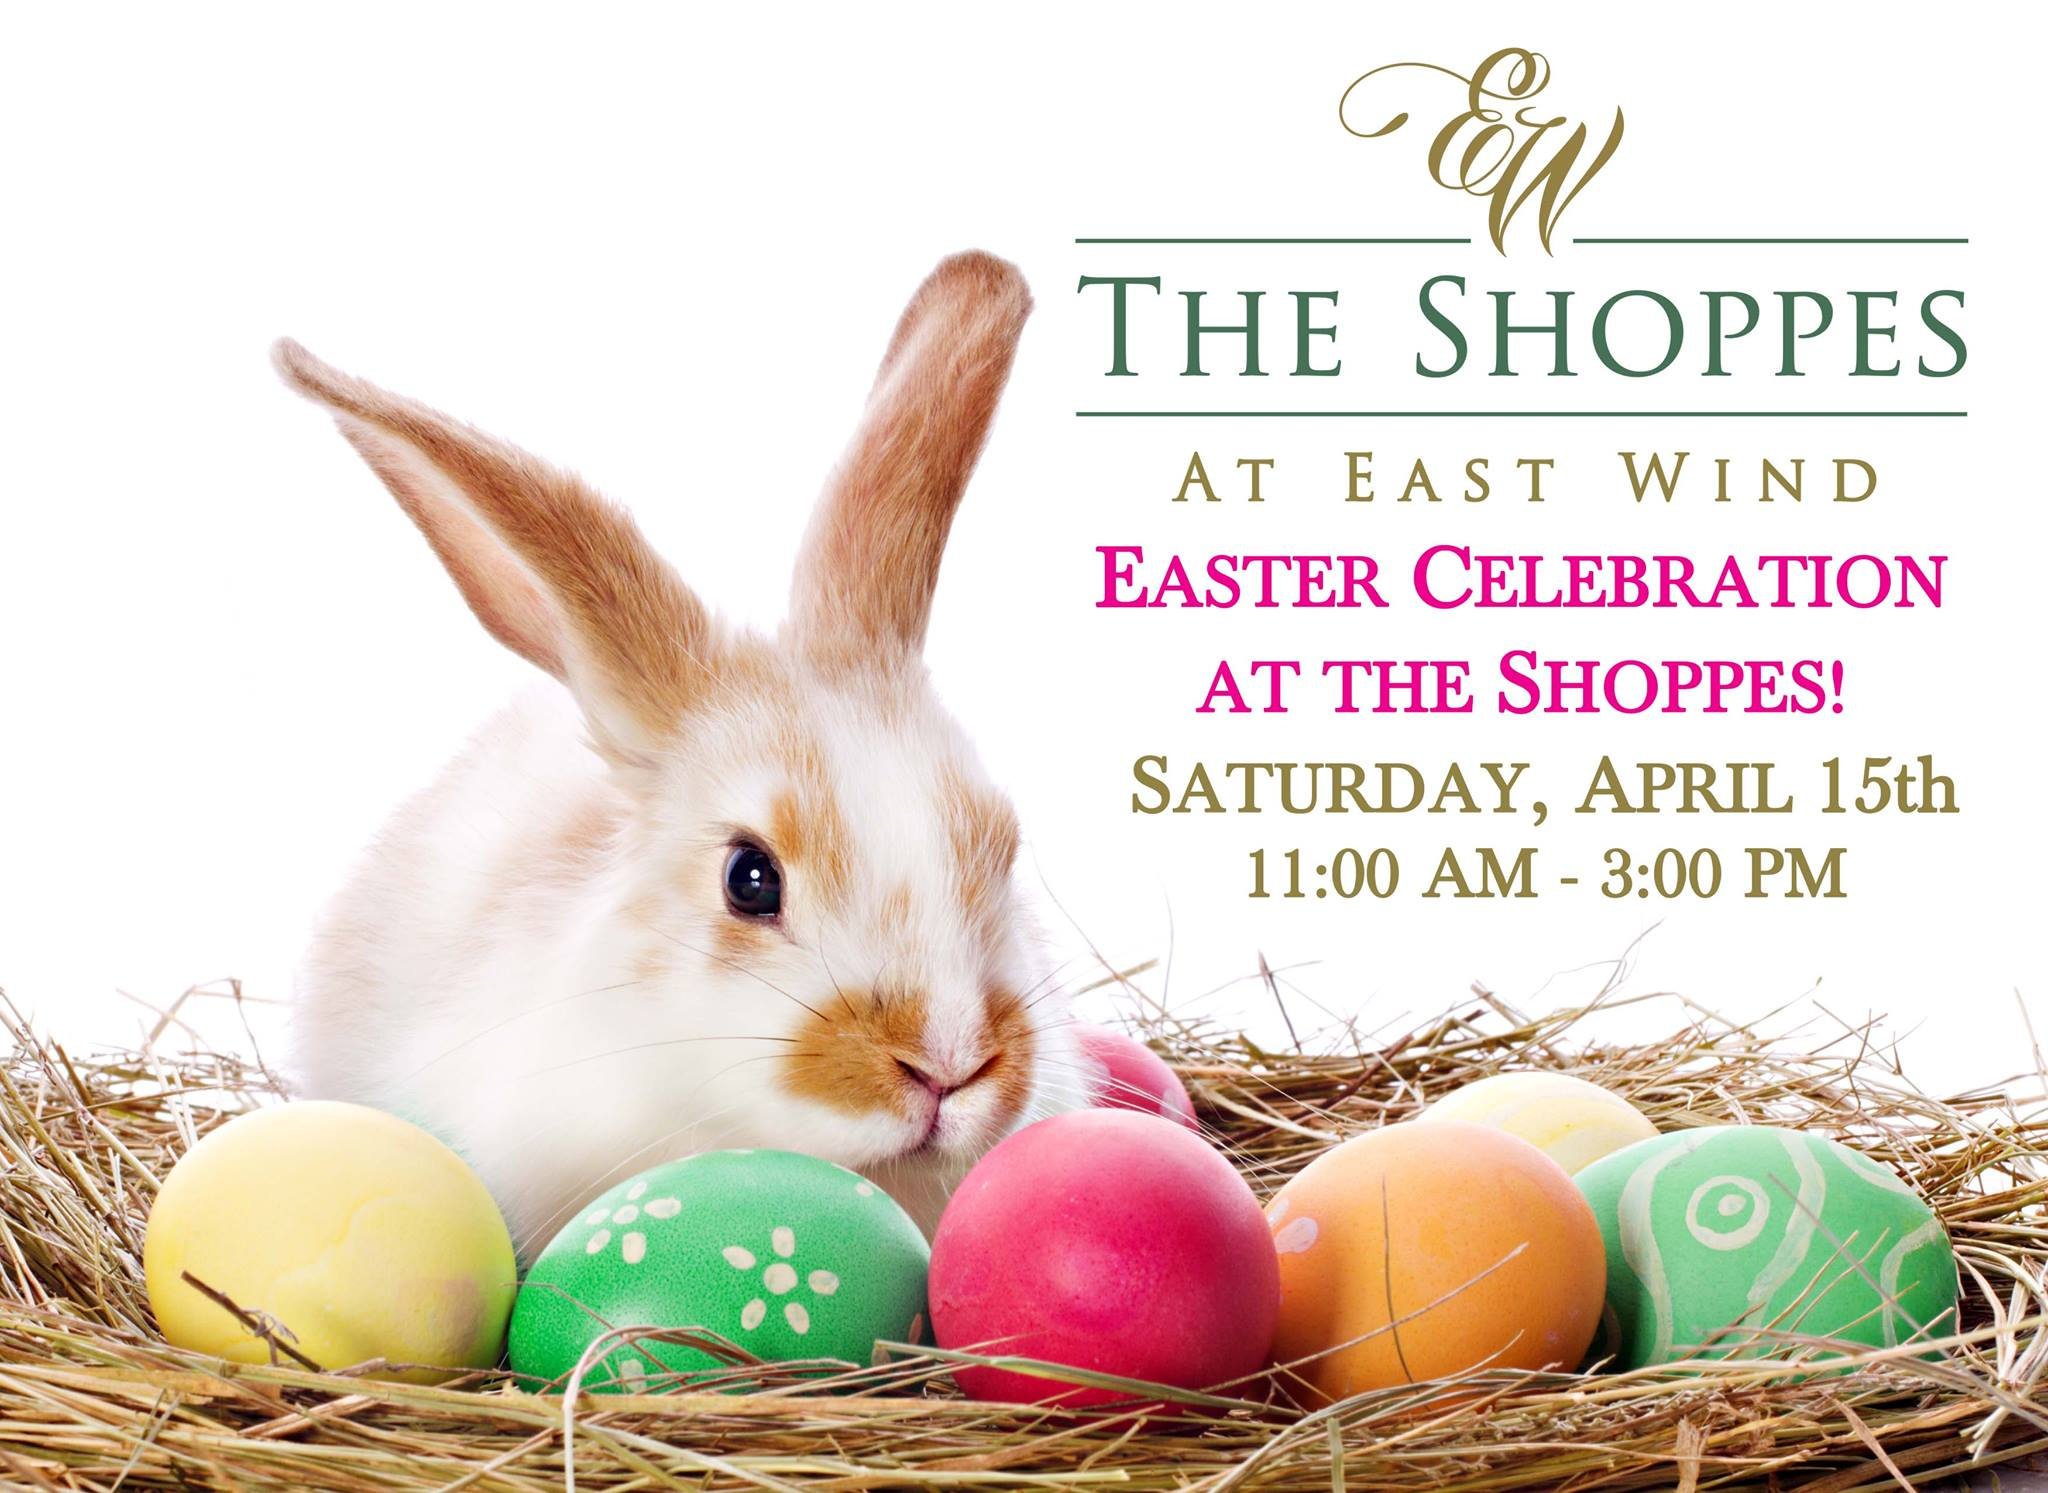 Easter events on long island 2017 momeefriendsli located at 5768 route 25a wading river new york 11792 negle Images